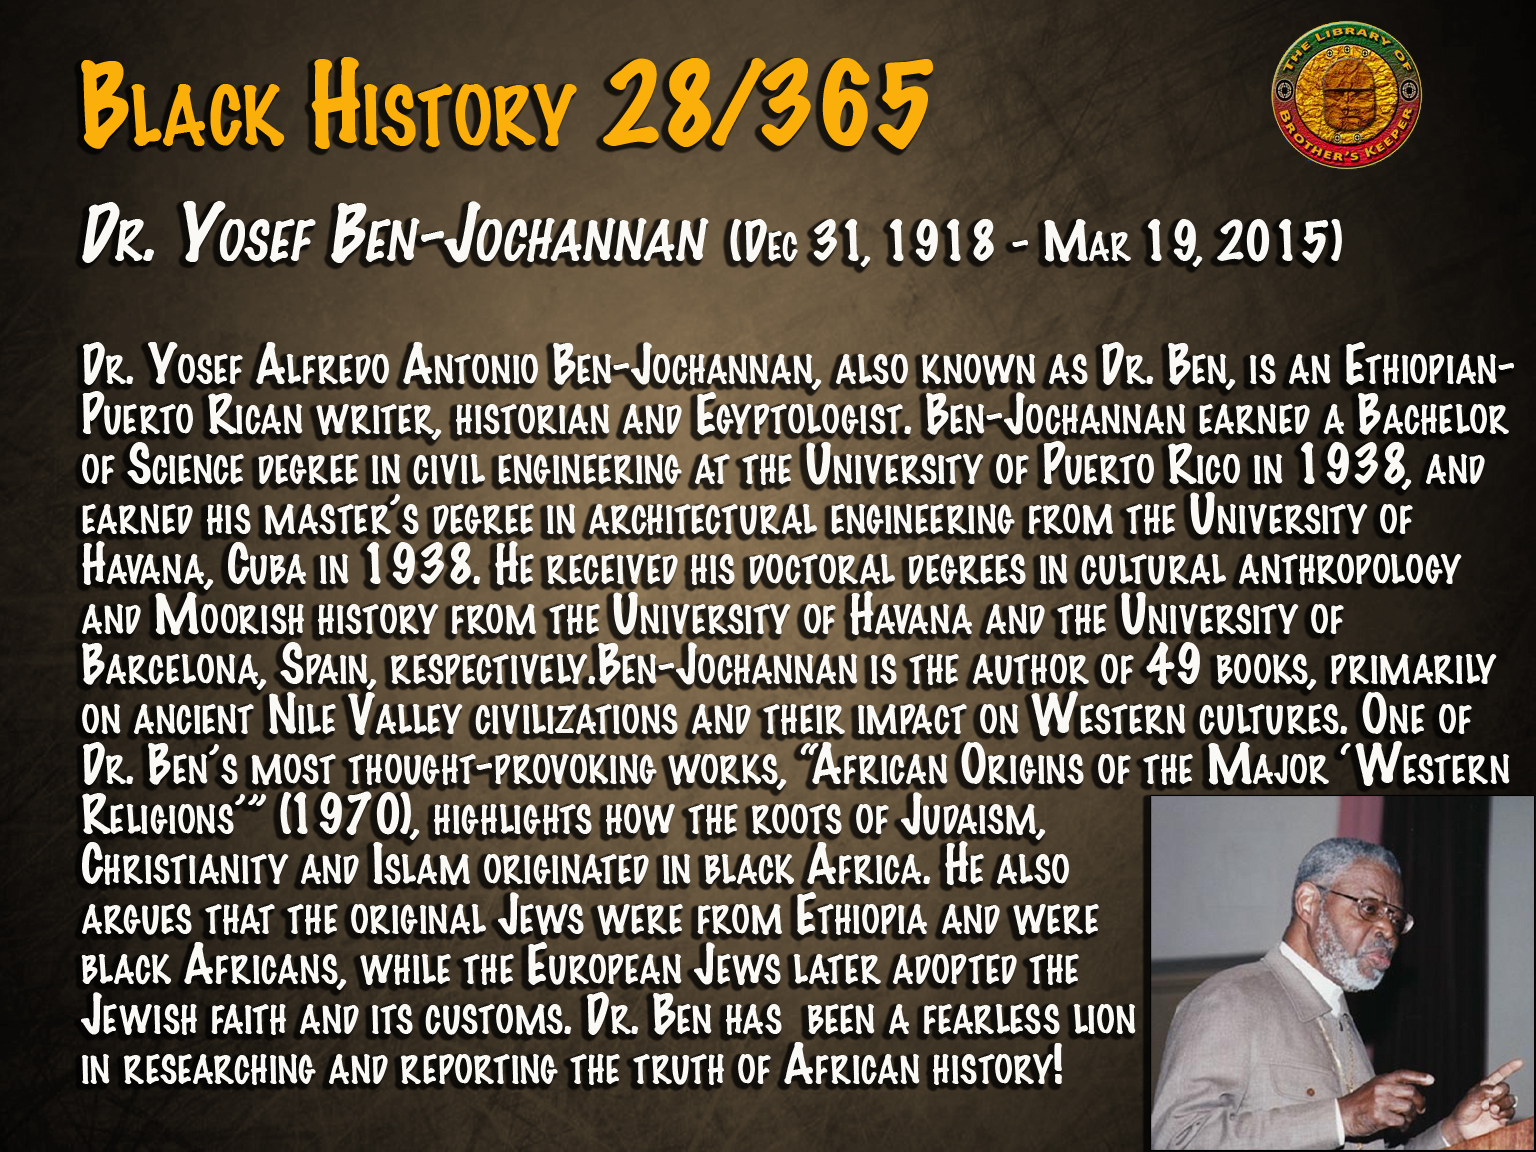 Dr. Yosef Ben Jochannan